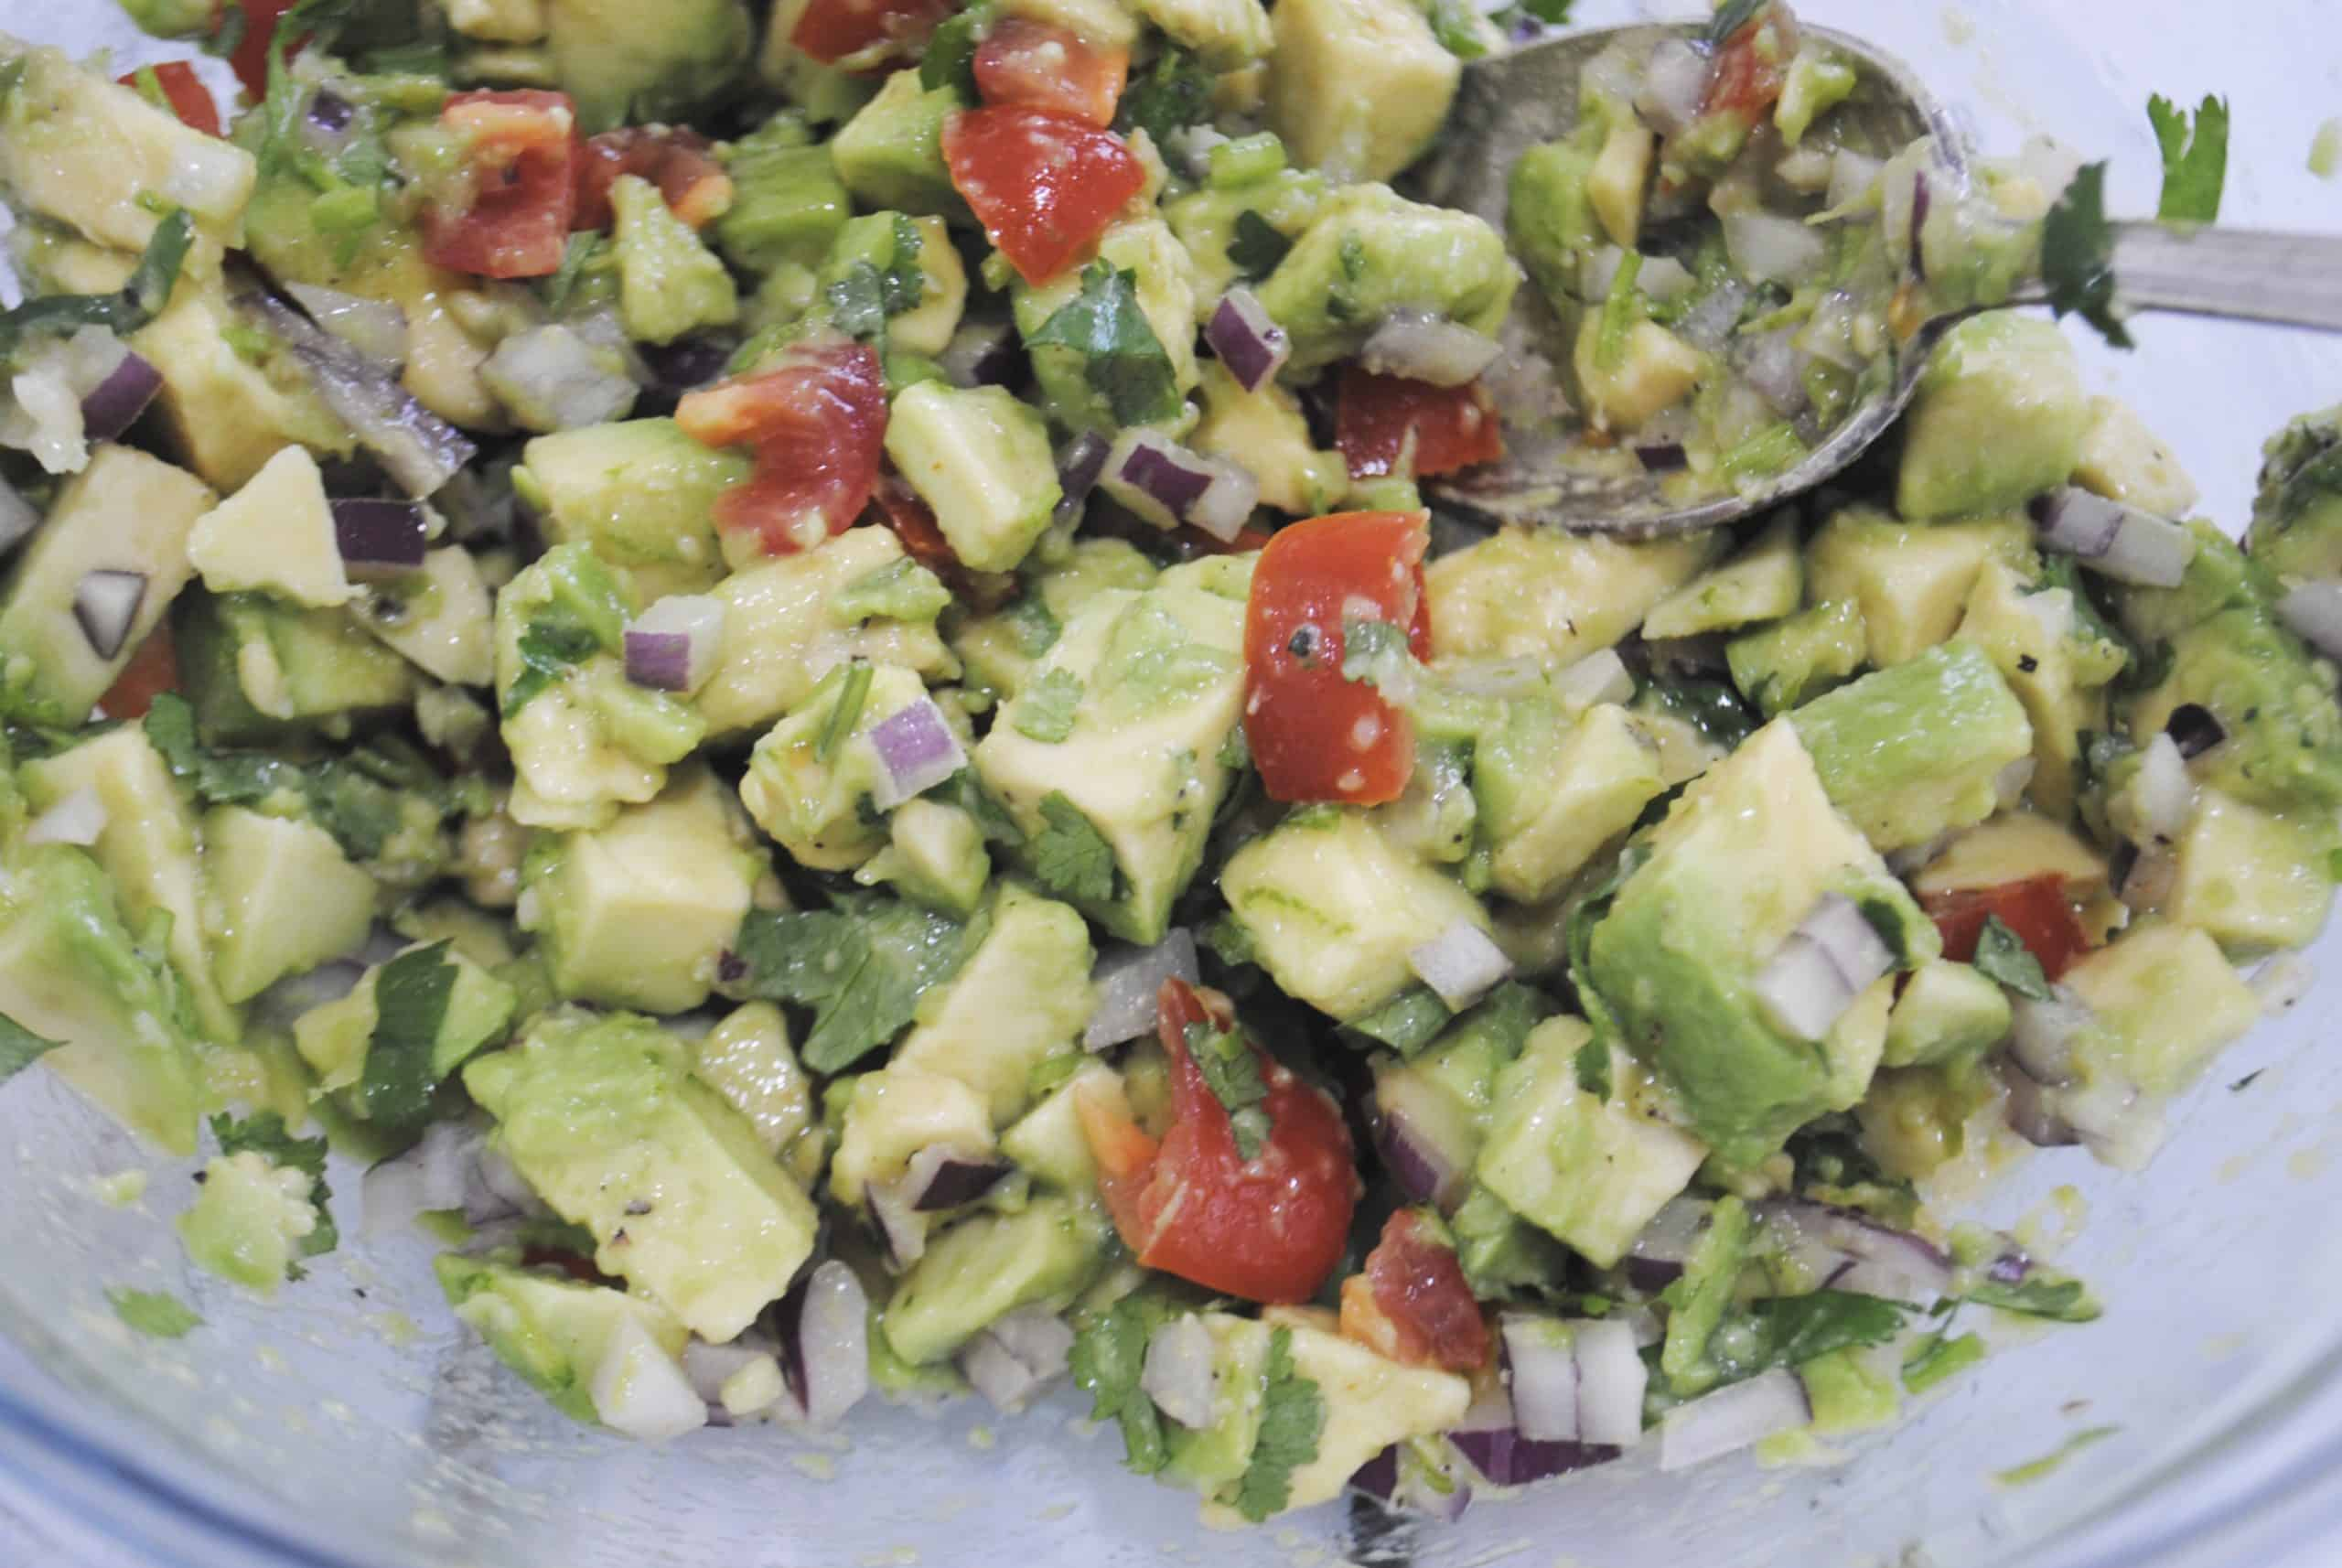 guacamole ingredients added to avocado and lime juice gently mixed together in a glass bowl